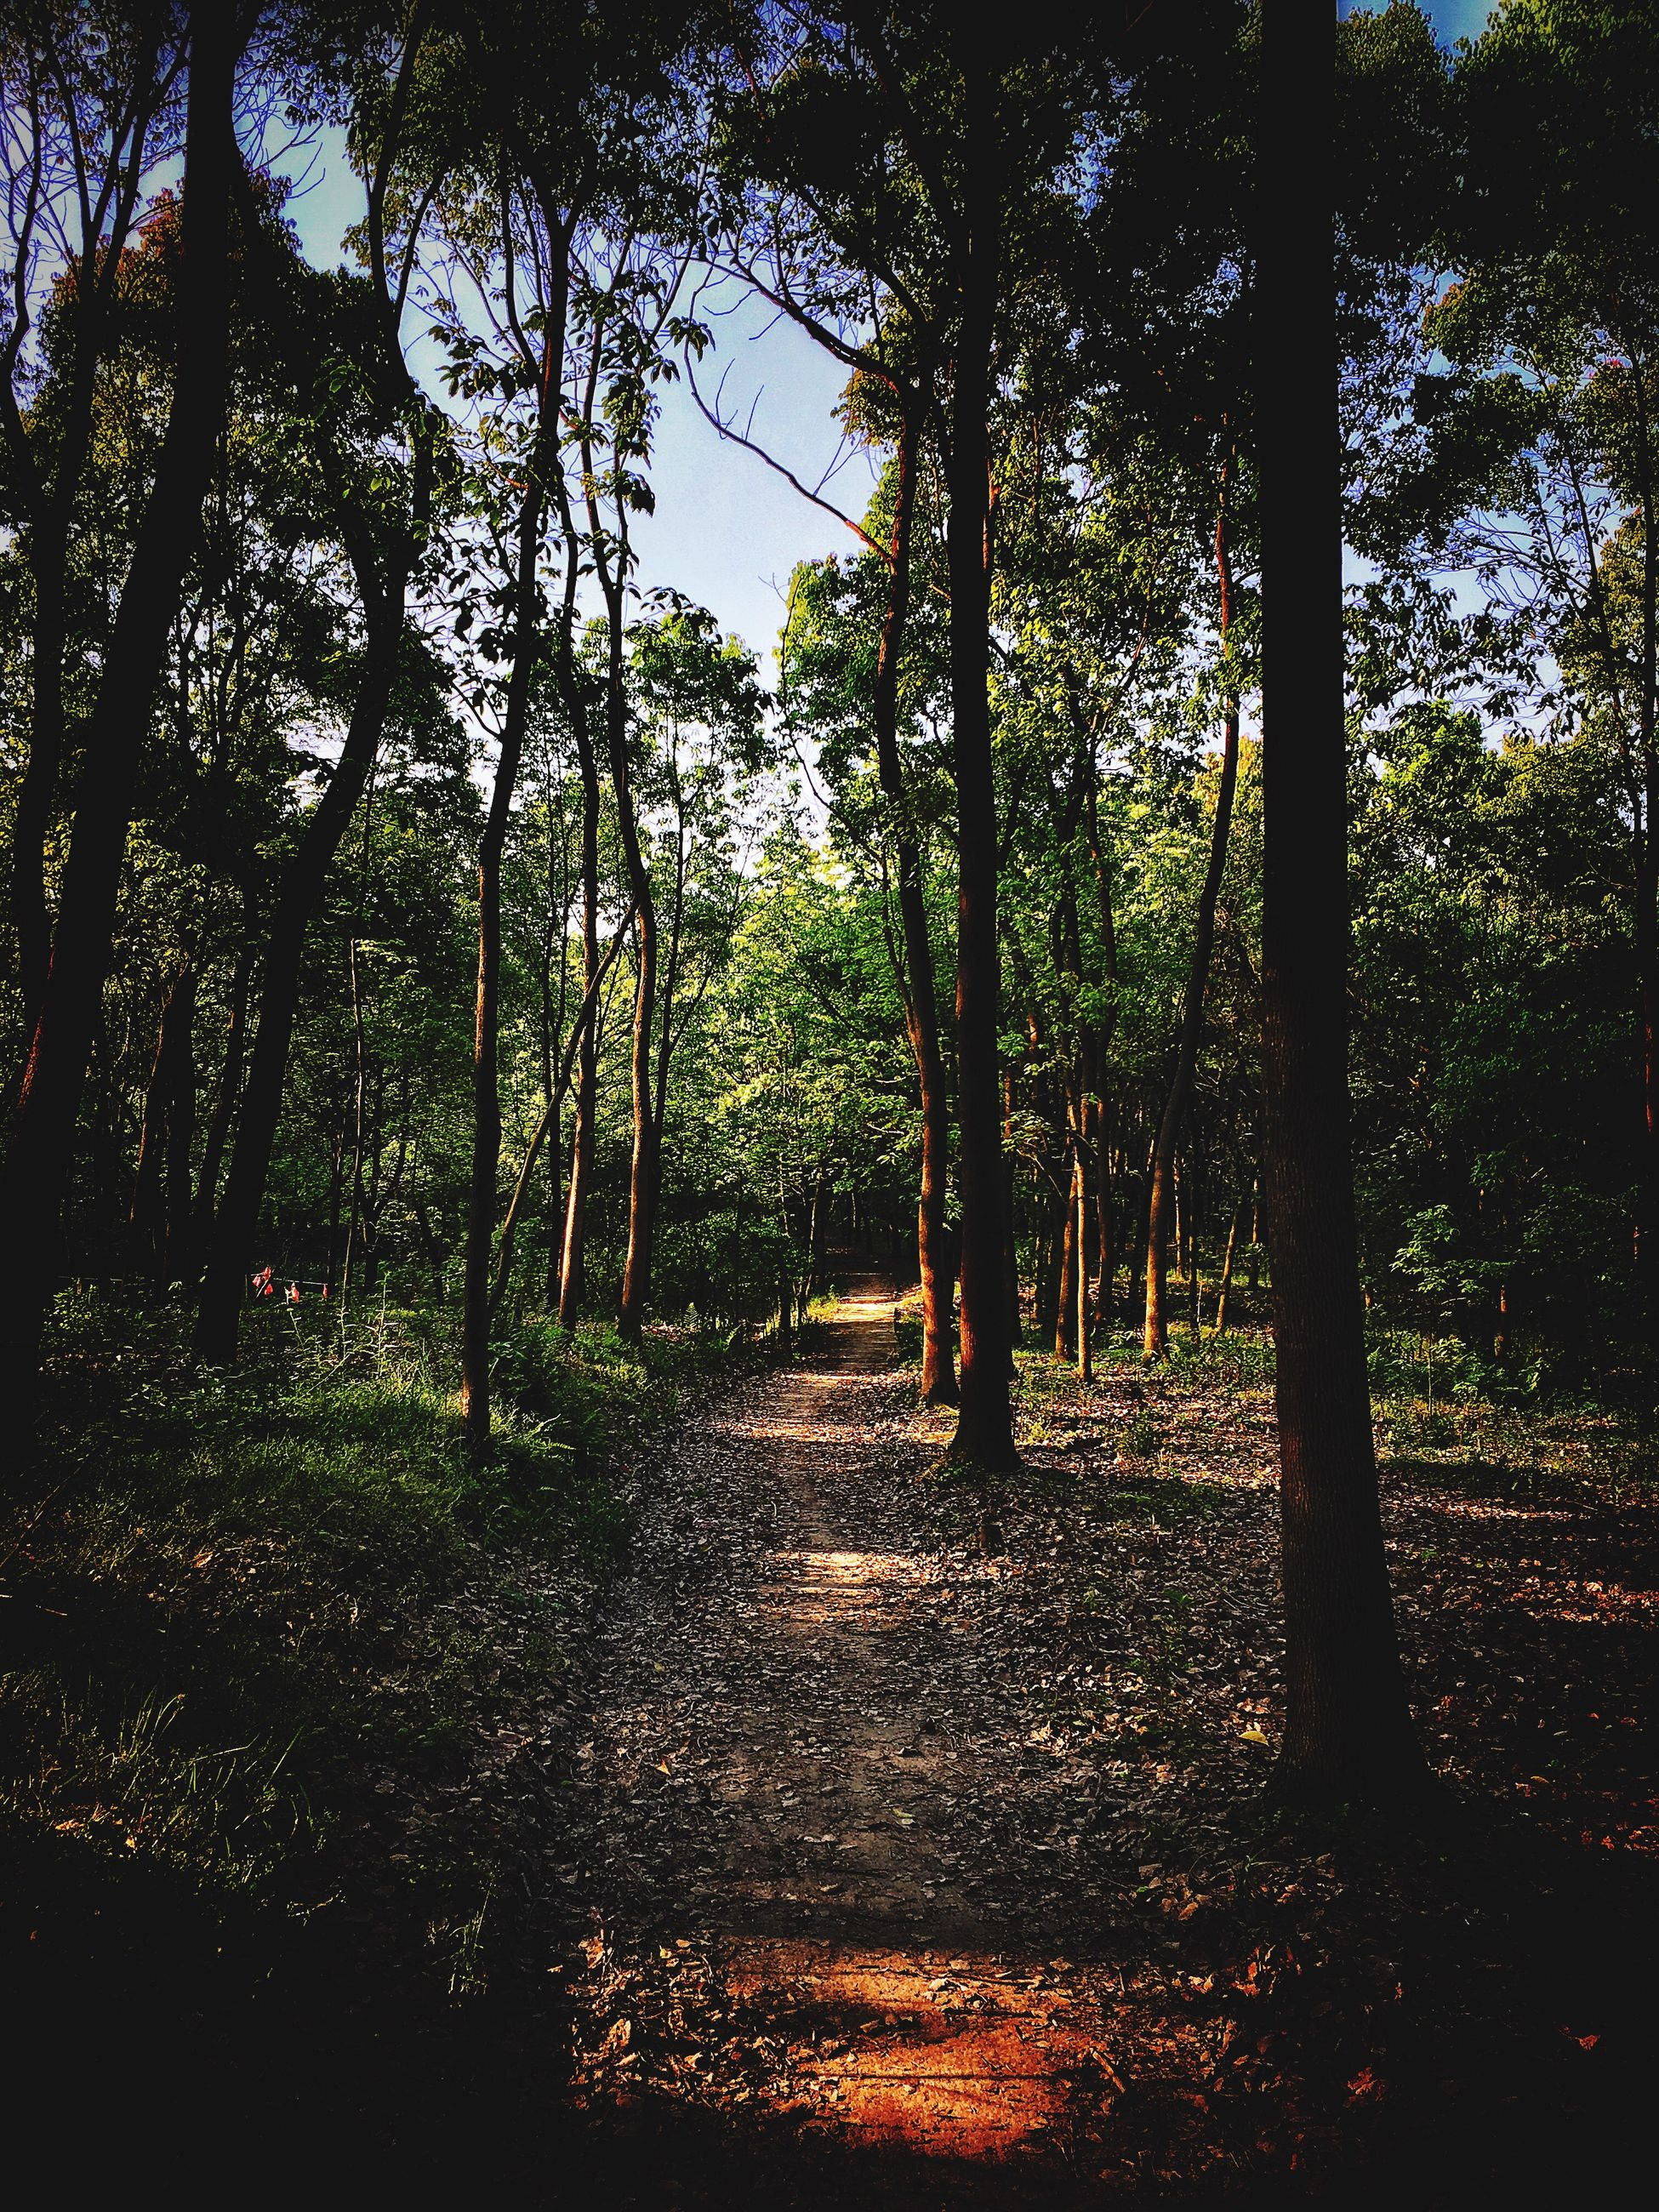 tree, tranquility, growth, tranquil scene, nature, tree trunk, beauty in nature, forest, scenics, sunlight, branch, woodland, autumn, park - man made space, shadow, landscape, idyllic, outdoors, non-urban scene, footpath